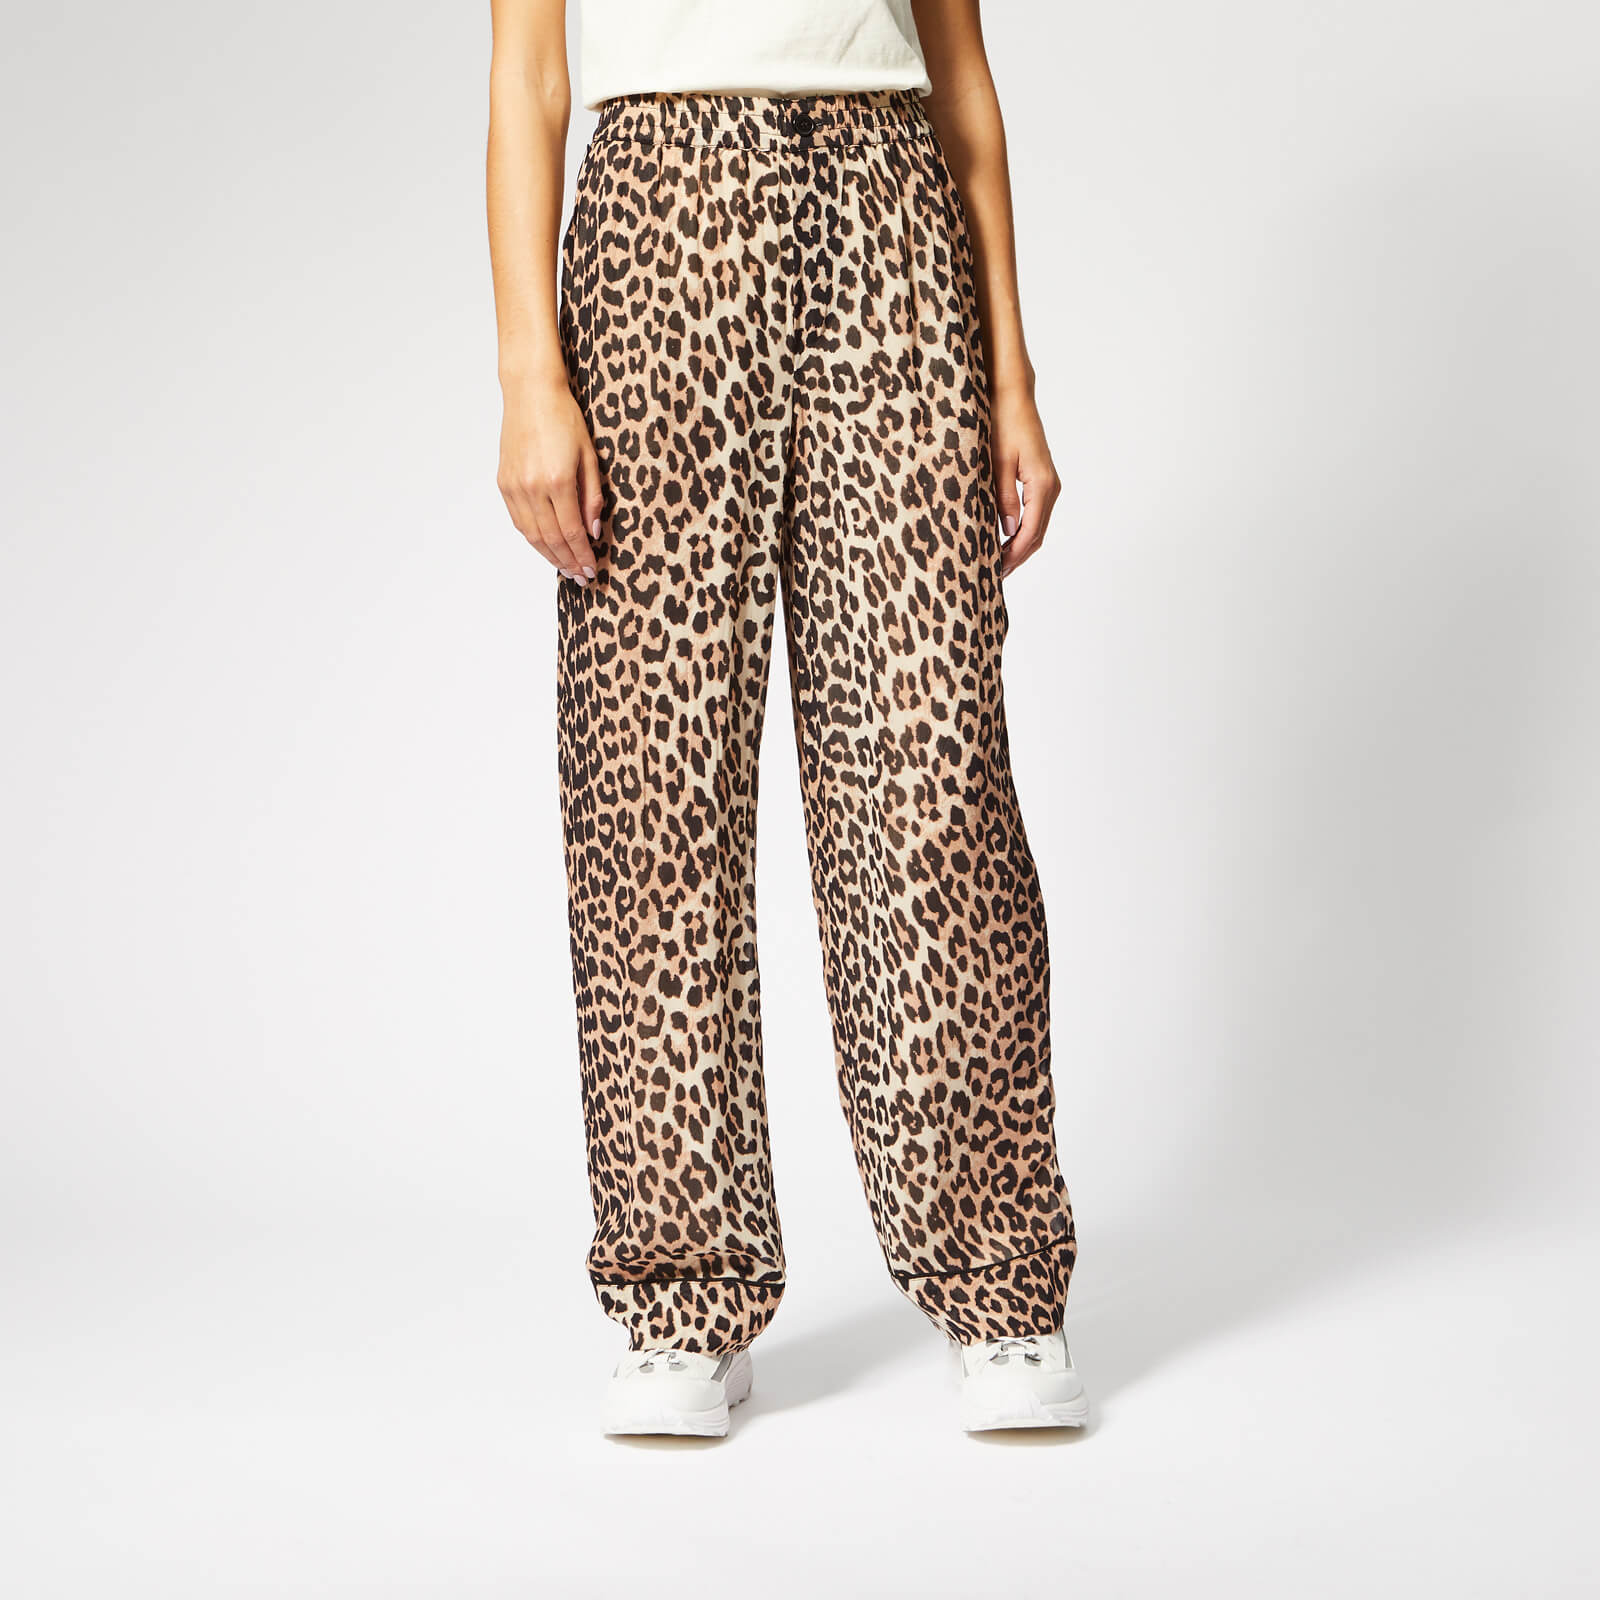 15a214c3 Ganni Women's Mullin Georgette Trousers - Leopard - Free UK Delivery over  £50